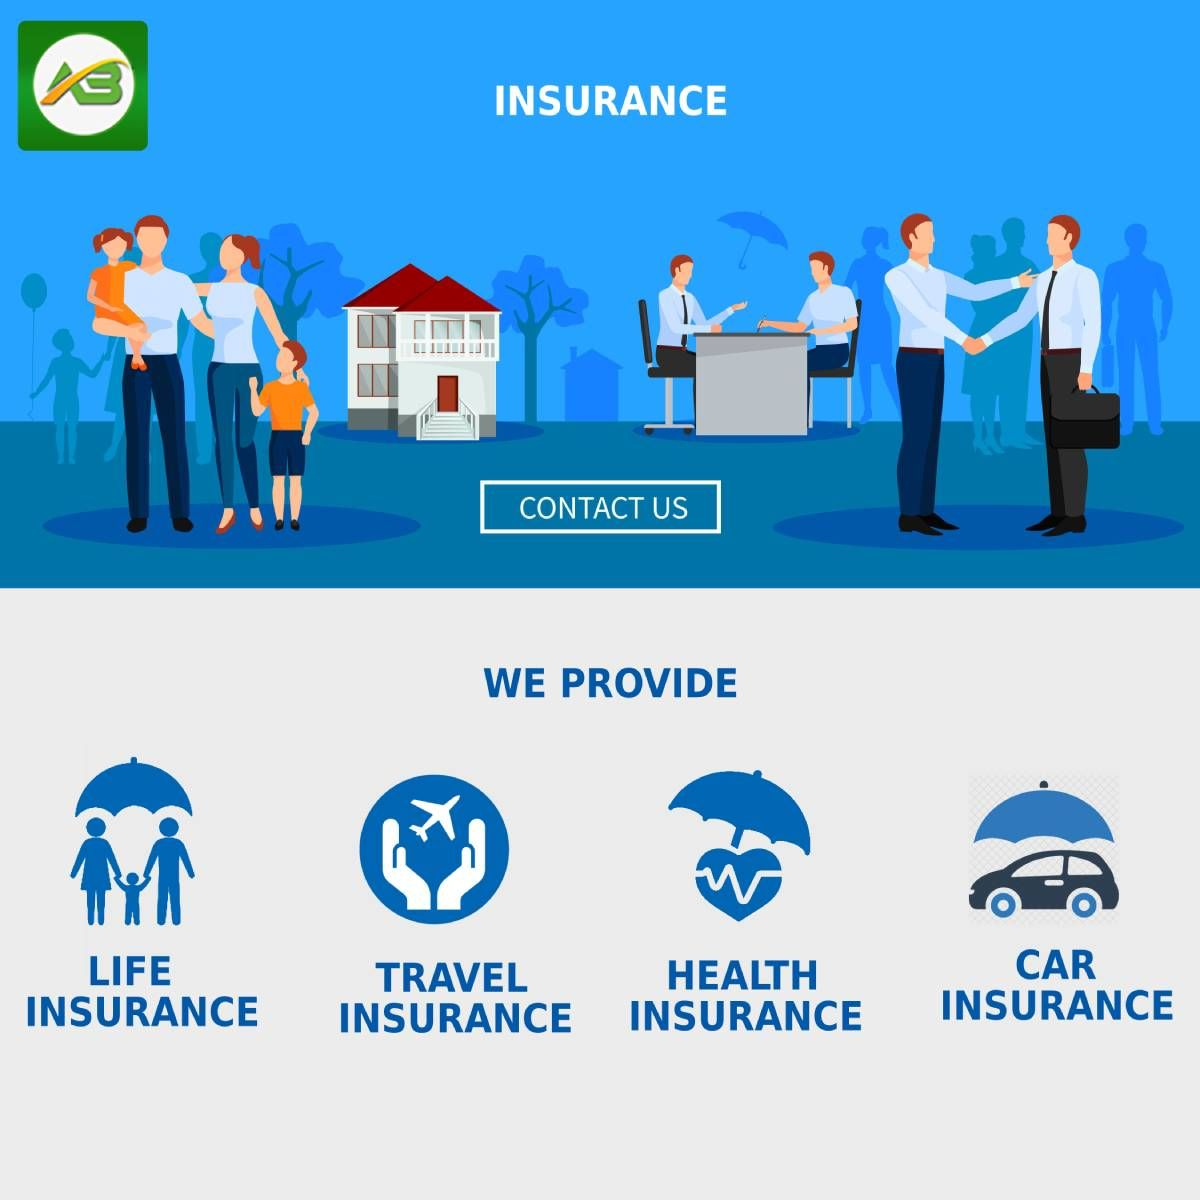 We Offer All Types Of Insurance Services Life Insurance Health Insurance Travel Travel Health Insurance Health Insurance Health Insurance Humor